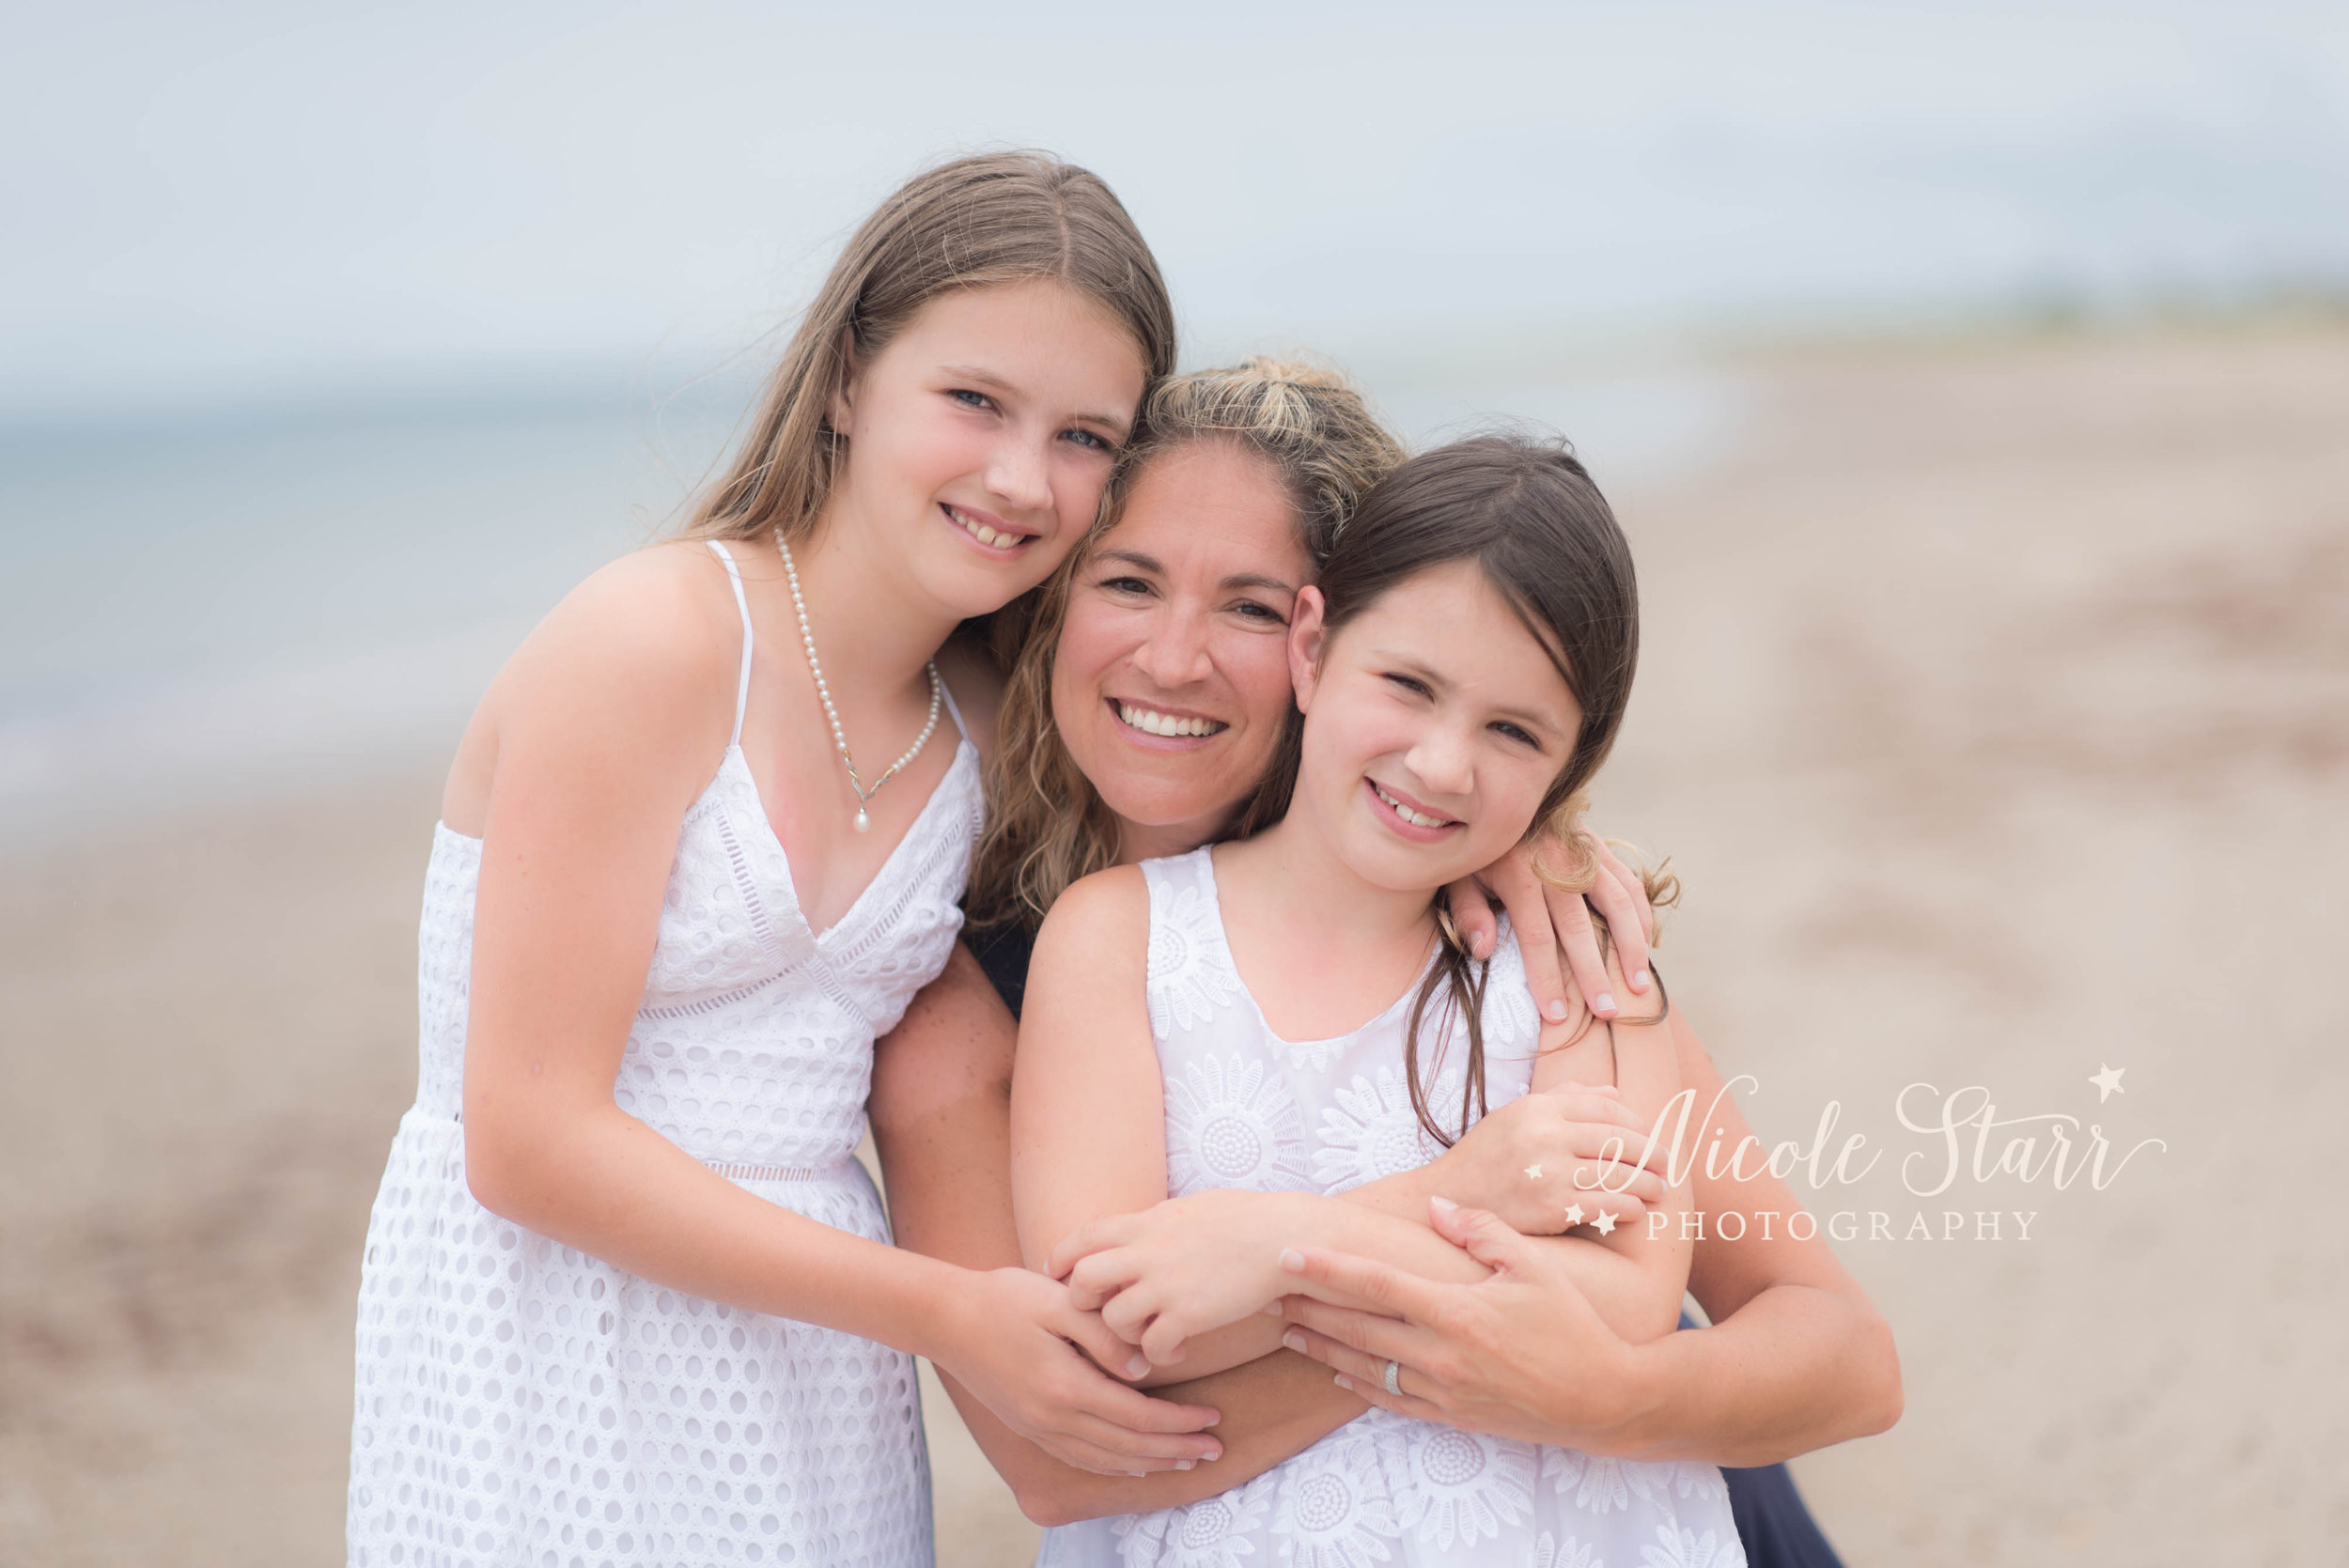 Nicole Starr Photography | Cape Cod Family Photographer | Boston Family Photographer | Family Photographer | Beach Family Photographer | Massachusetts Family Photographer